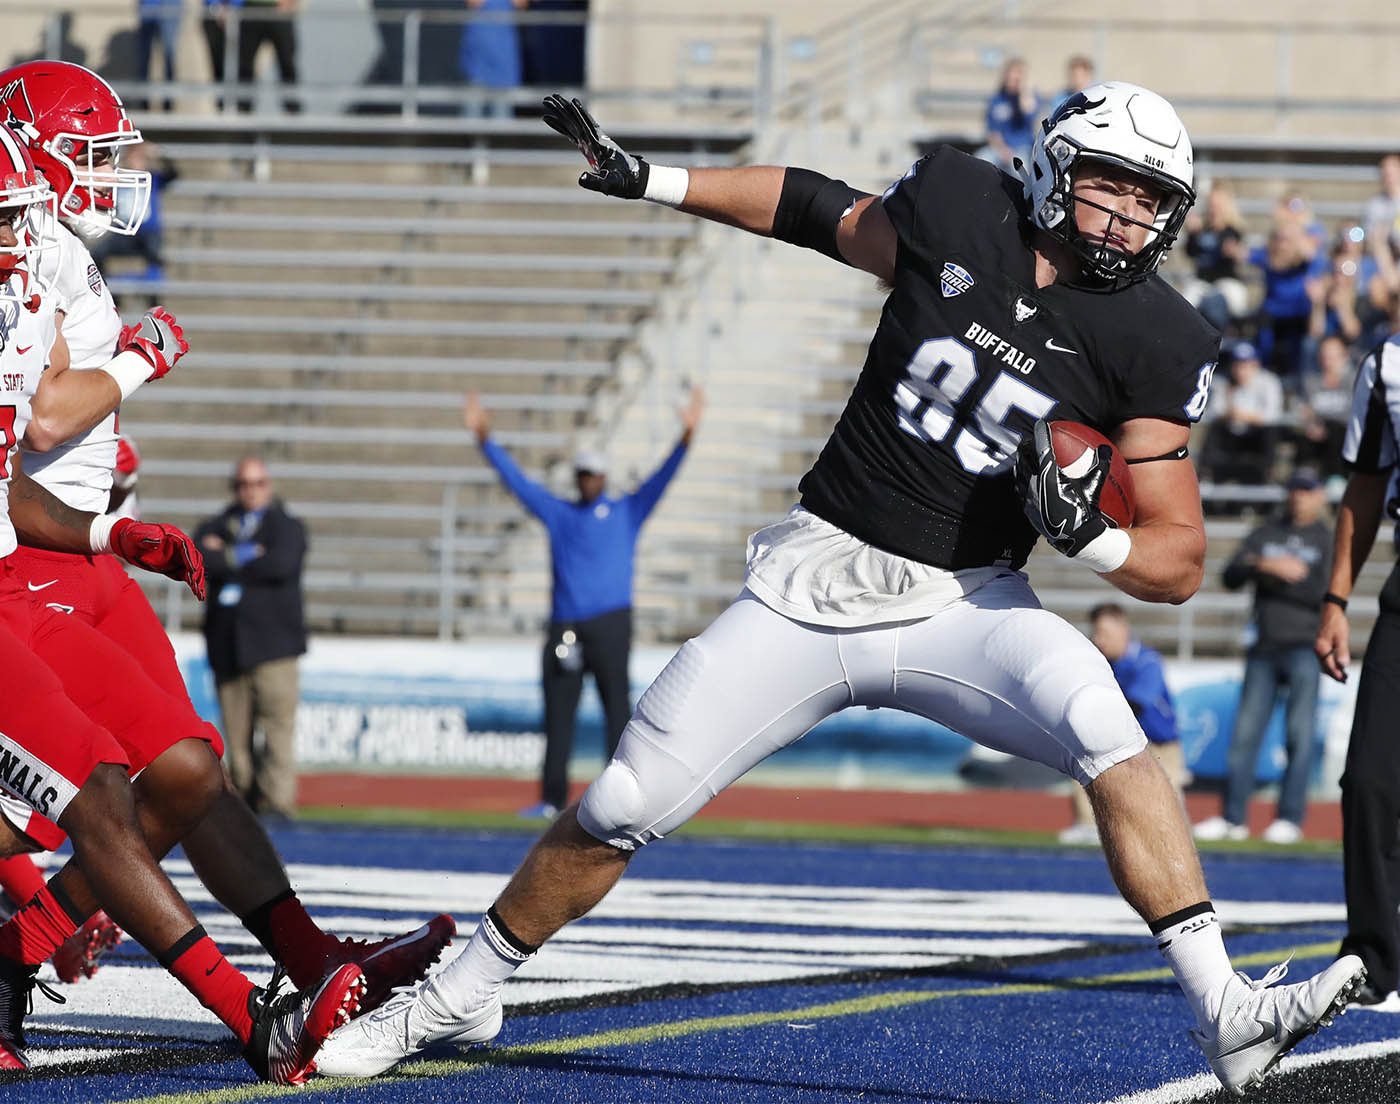 University at Buffalo tight end Mason Schreck catches a touchdown pass against Ball State during first half action on Saturday,Oct. 15, 2016.(Harry Scull Jr./Buffalo News)